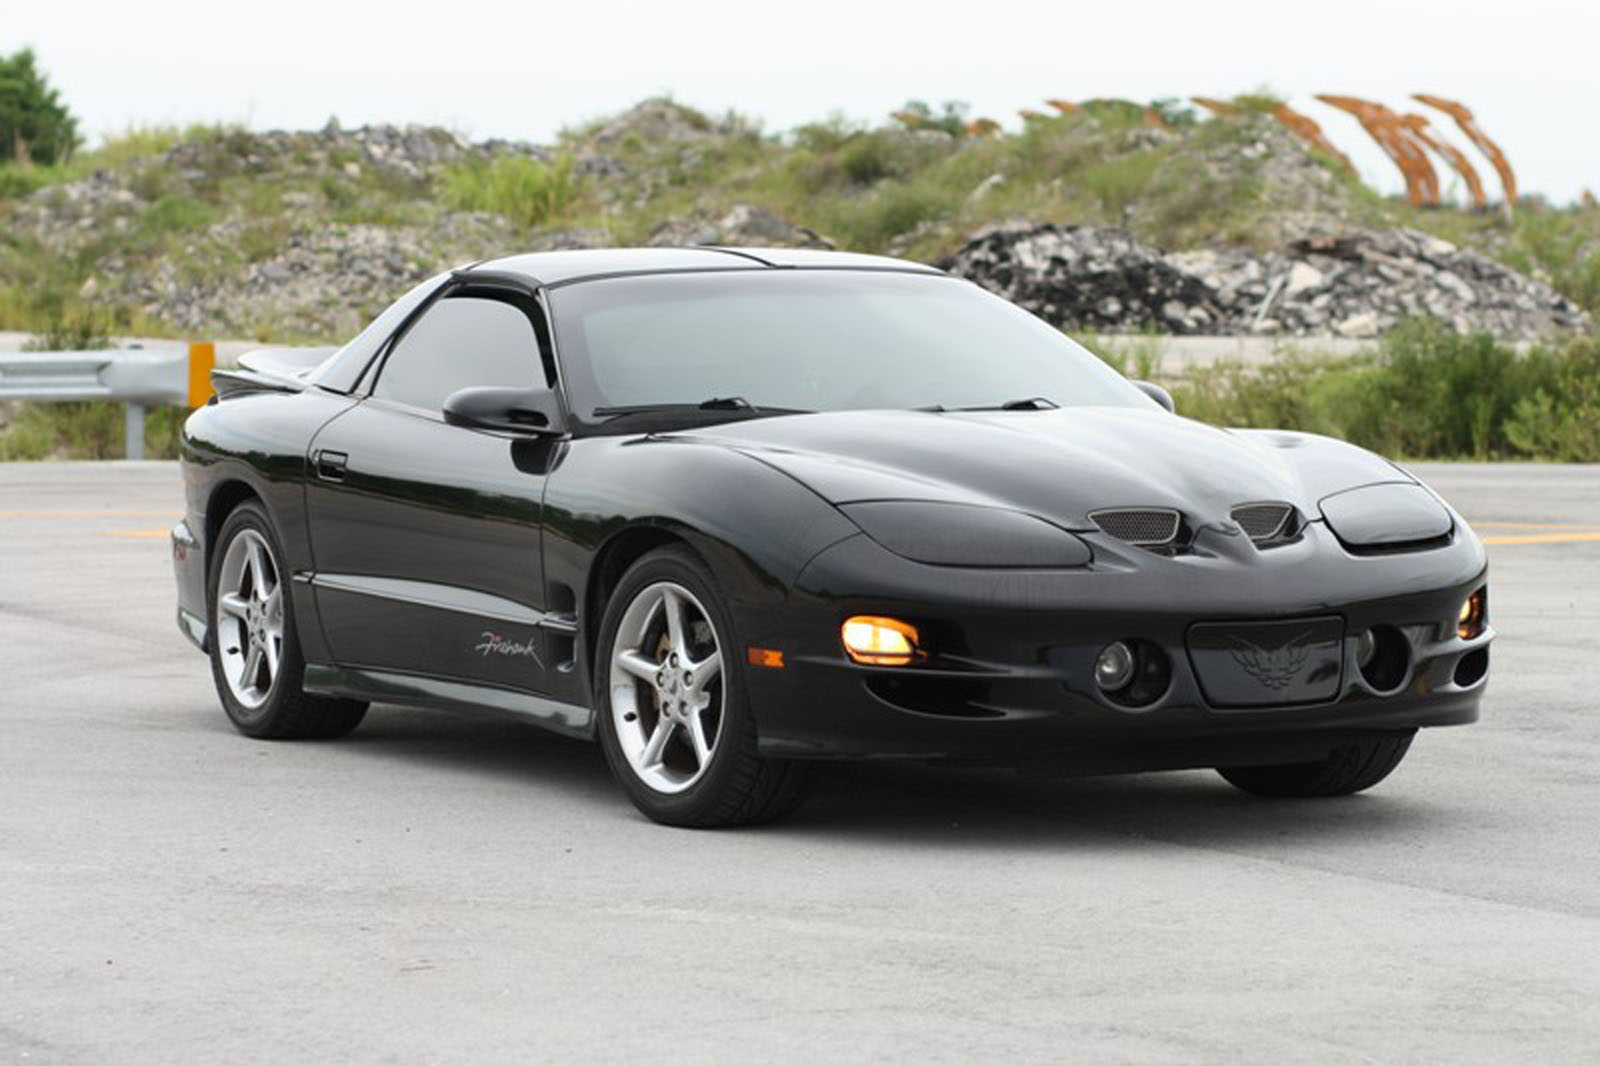 2000 pontiac by slp trans am firehawk for sale florida. Black Bedroom Furniture Sets. Home Design Ideas